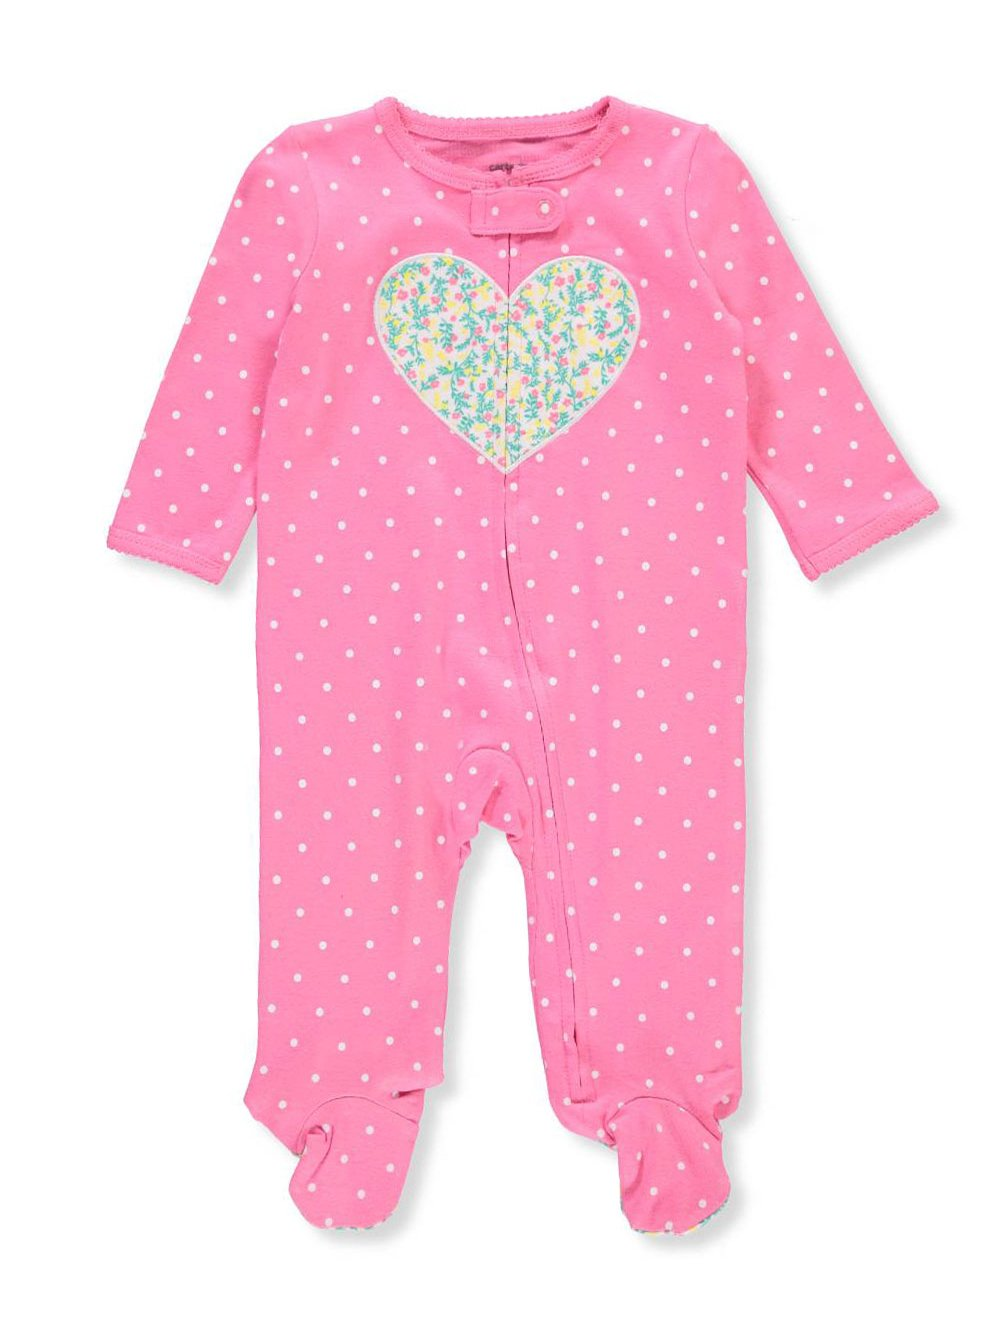 Carter's Baby Girls' Baby Girls Zip up Heart Cotton Sleep and Play Newborn by Carter's (Image #1)